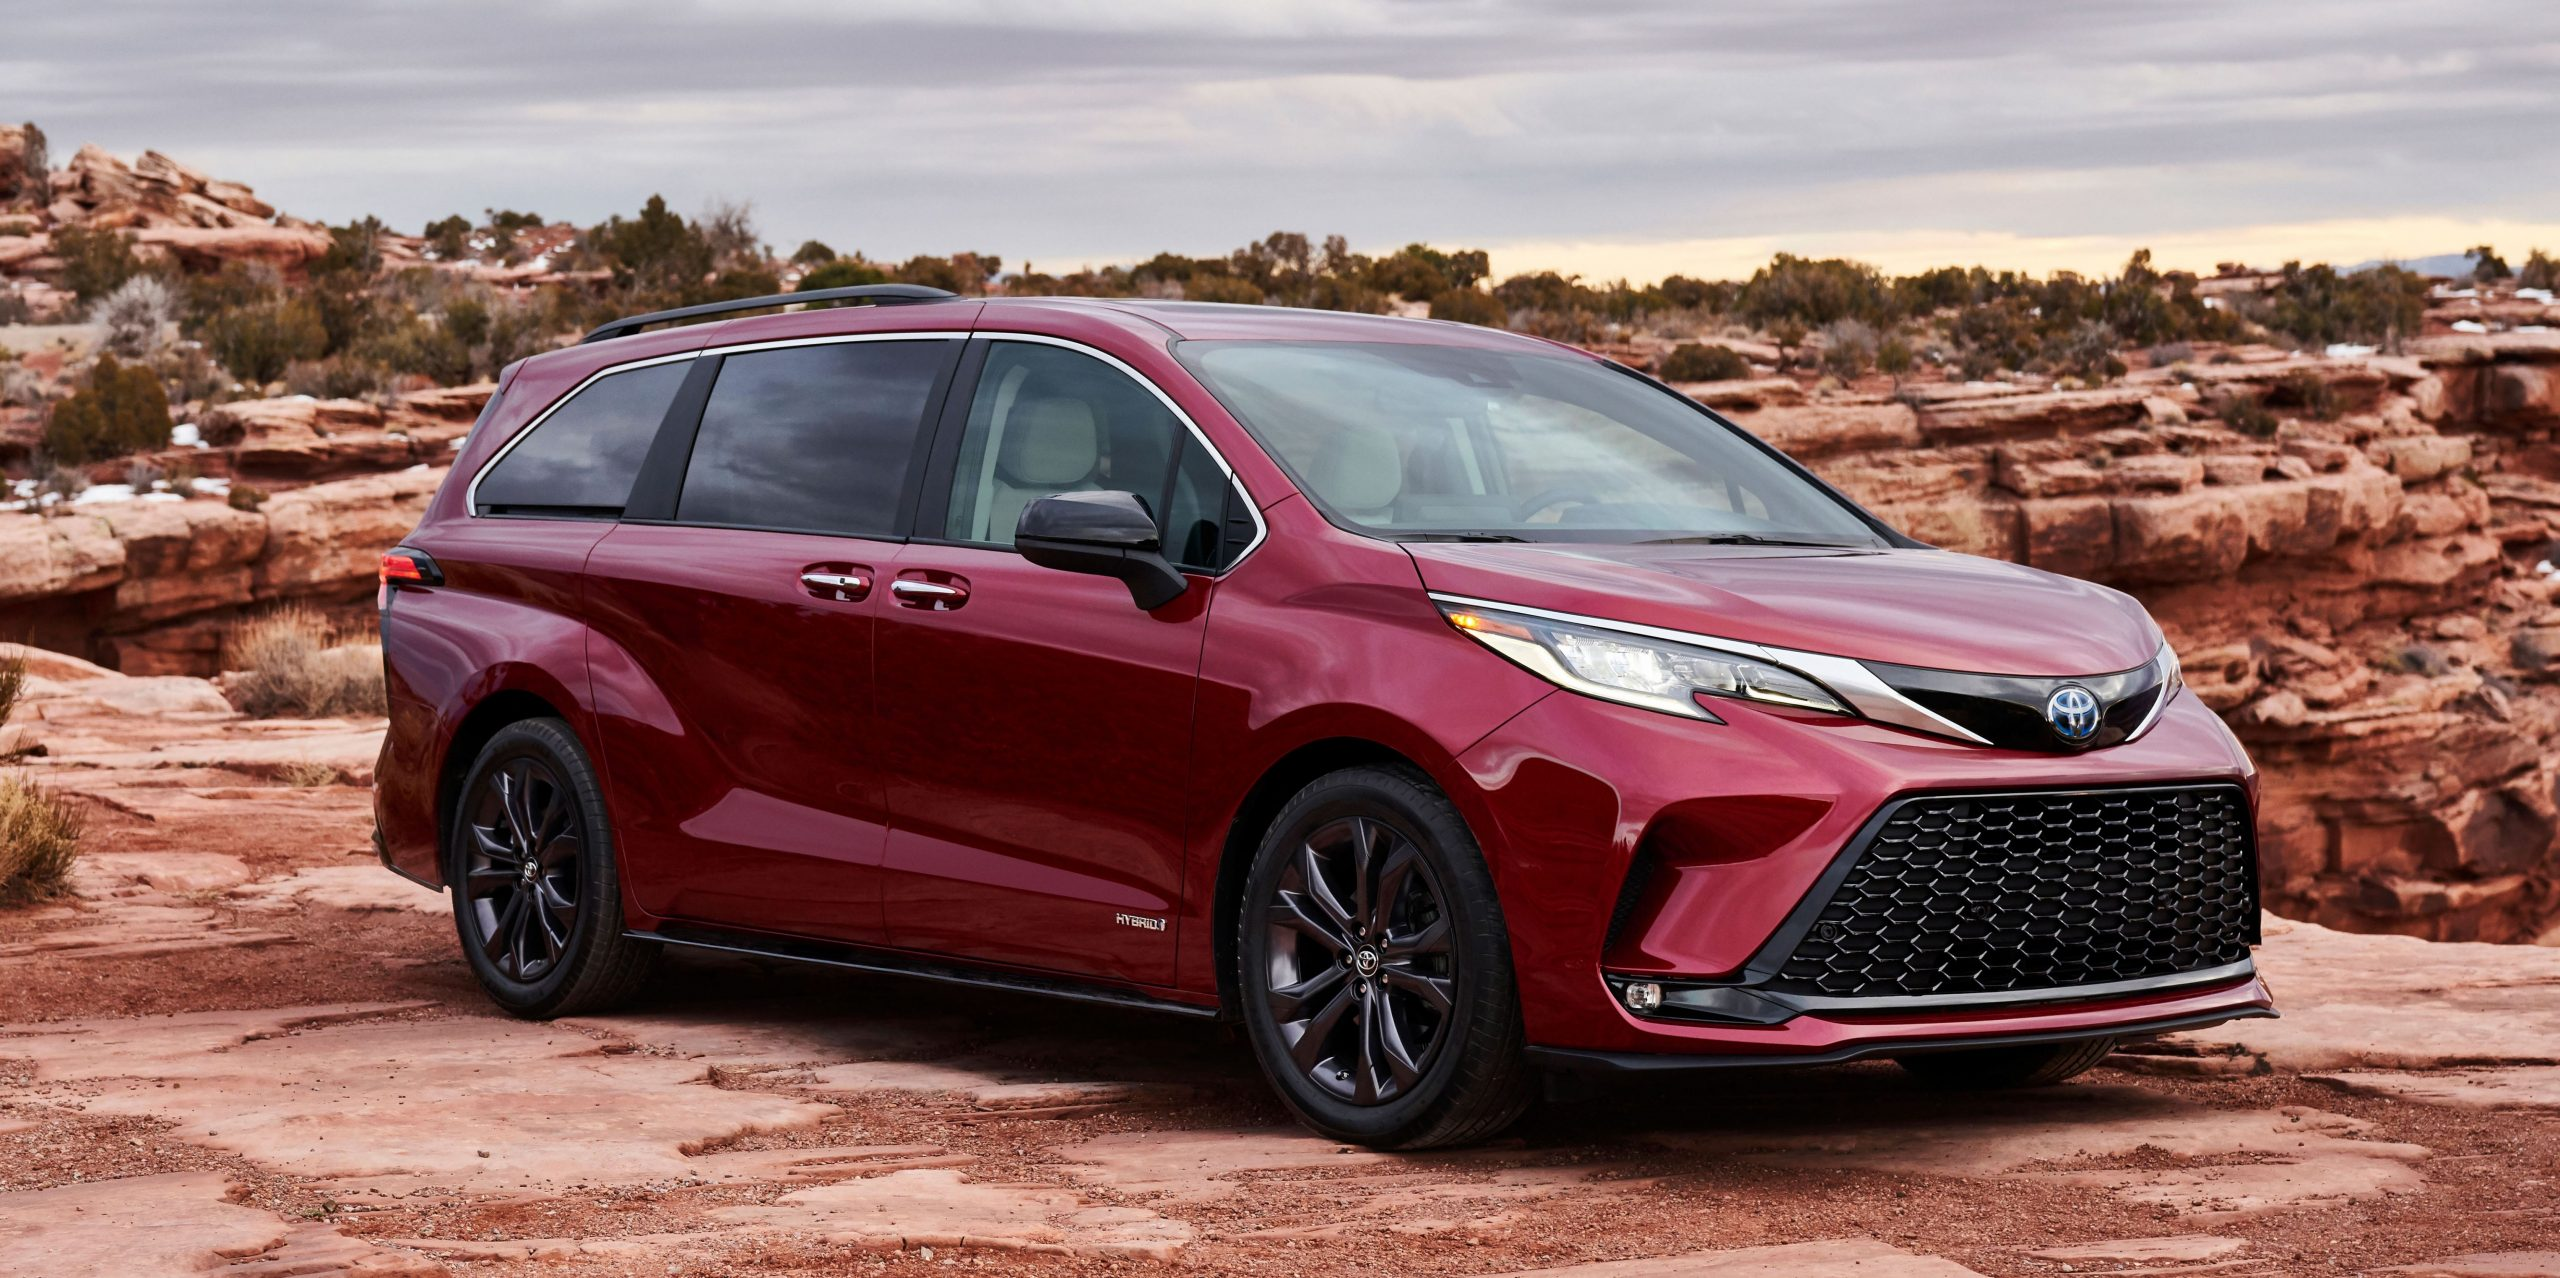 4 Toyota Sienna Looks Wild and Comes Only as a Hybrid - Toyota Minivan 2021